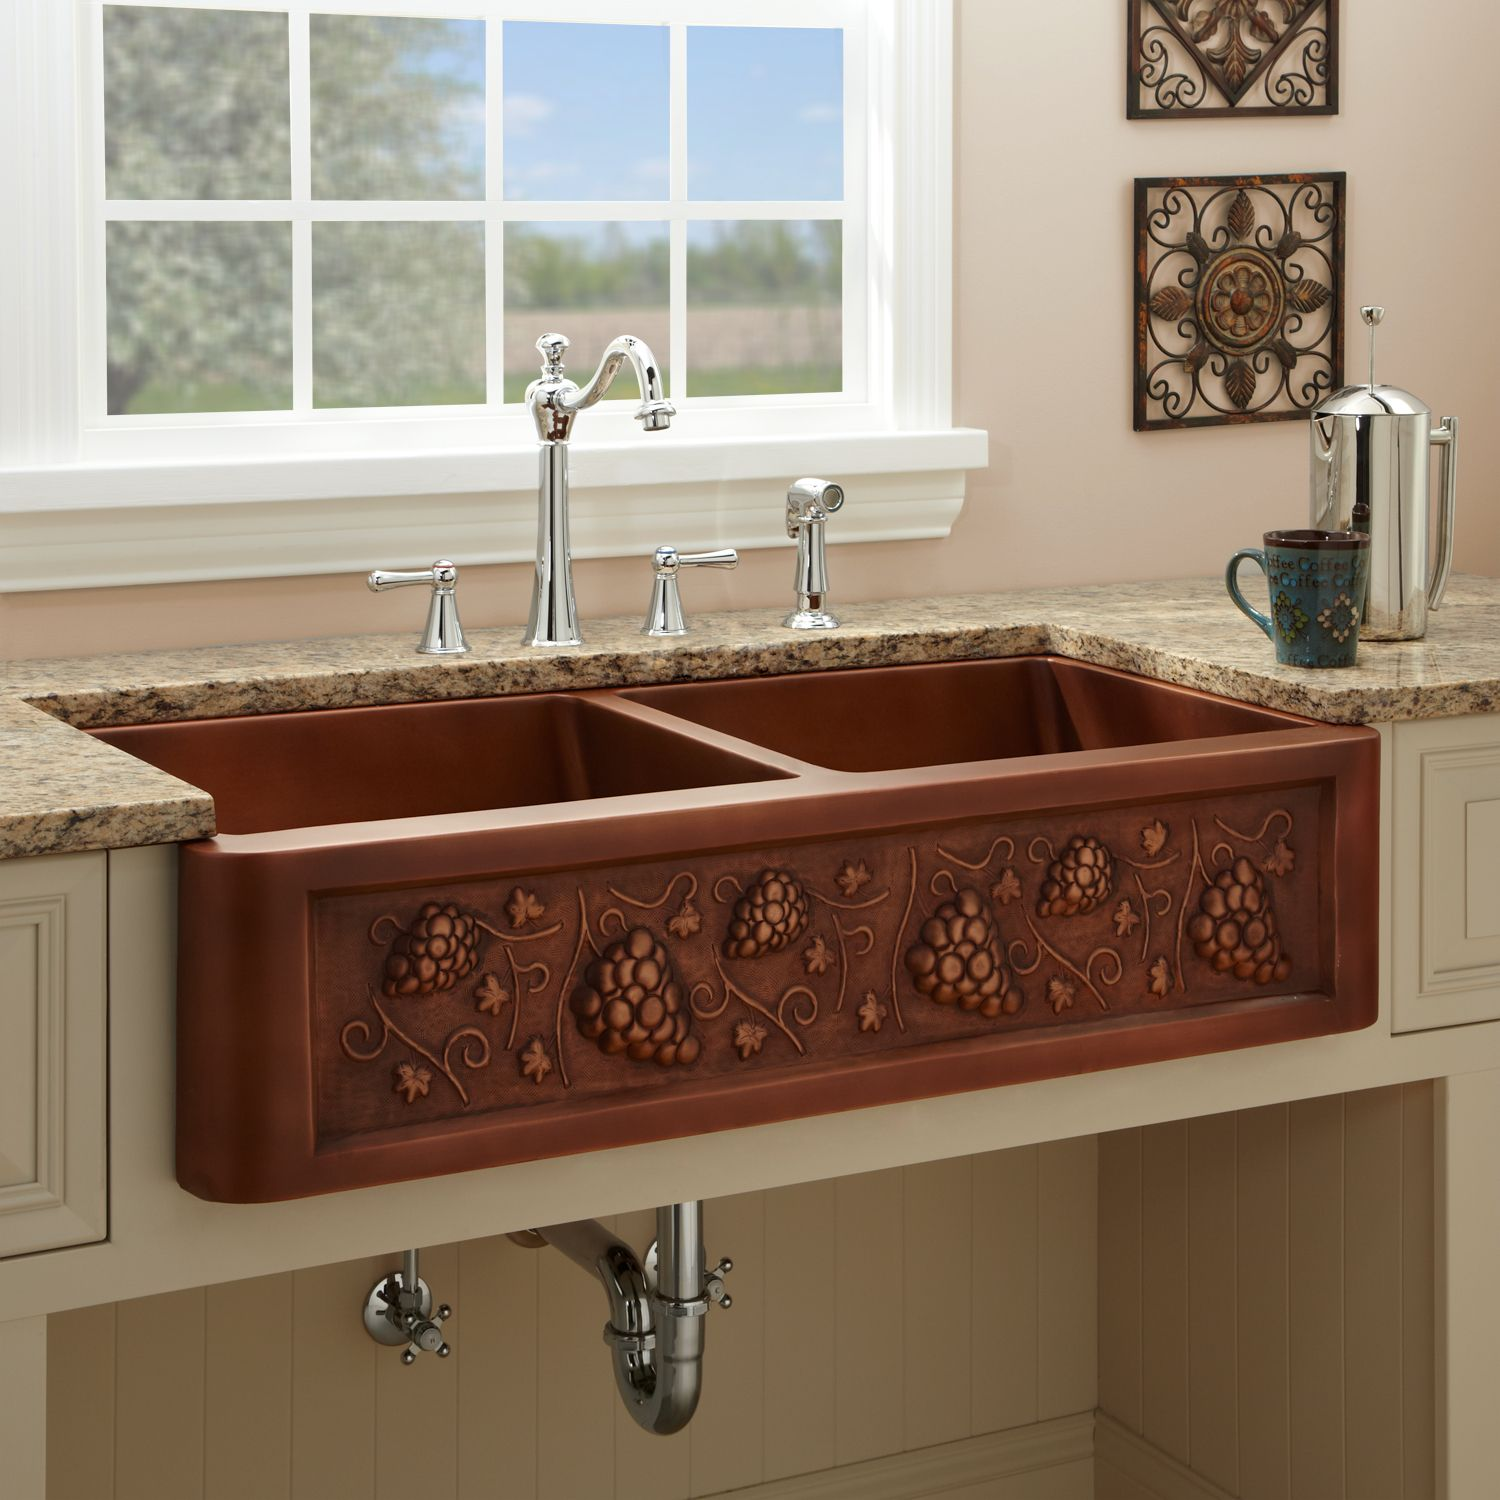 39 Tuscan Double Well Farmhouse Copper Sink With Grape Motif